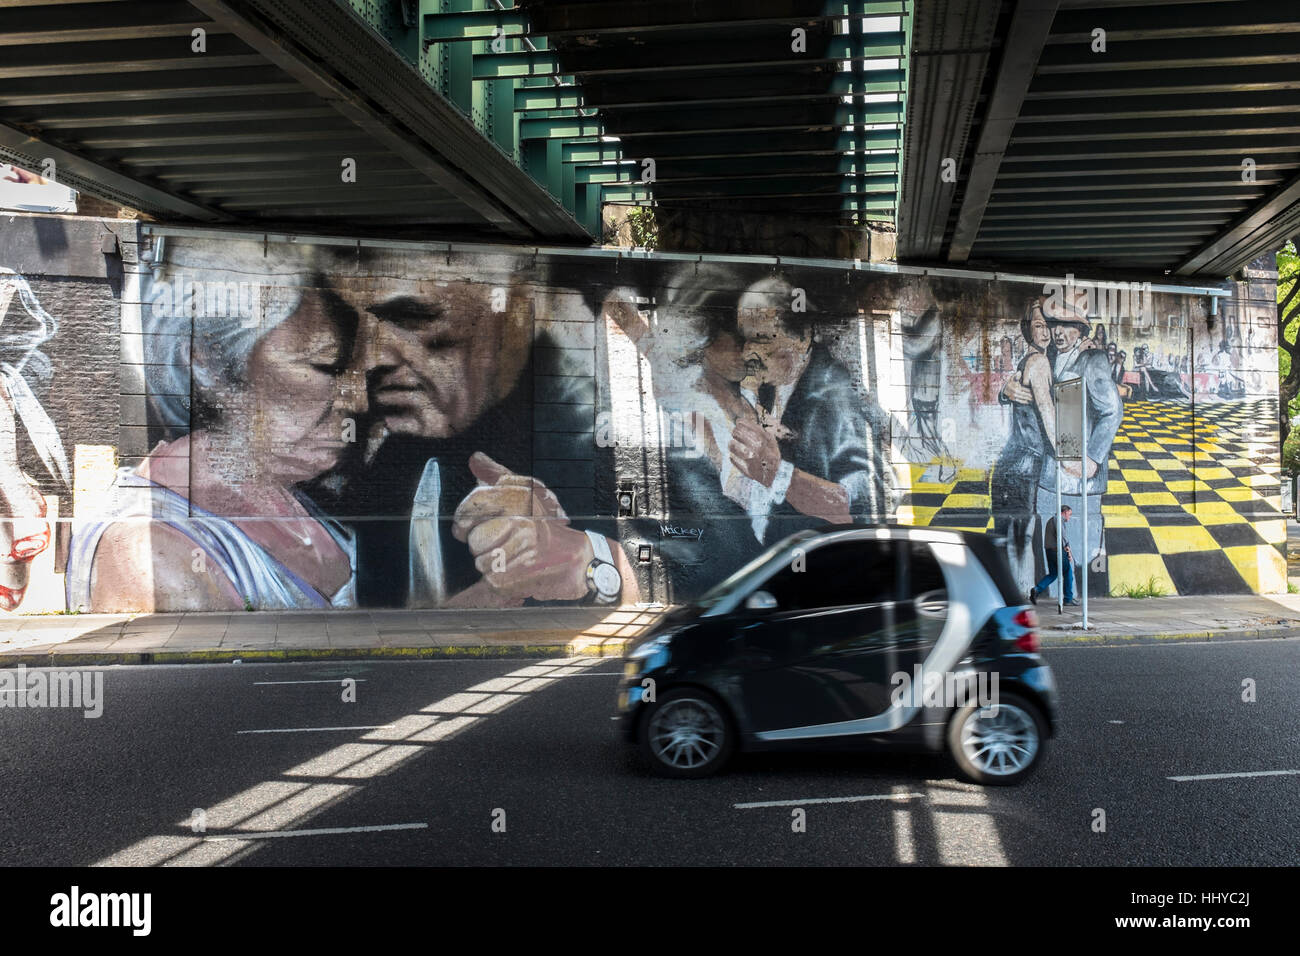 A car drives under a railway bridge where painted walls depict three couples dancing Tango in Buenos Aires city, - Stock Image